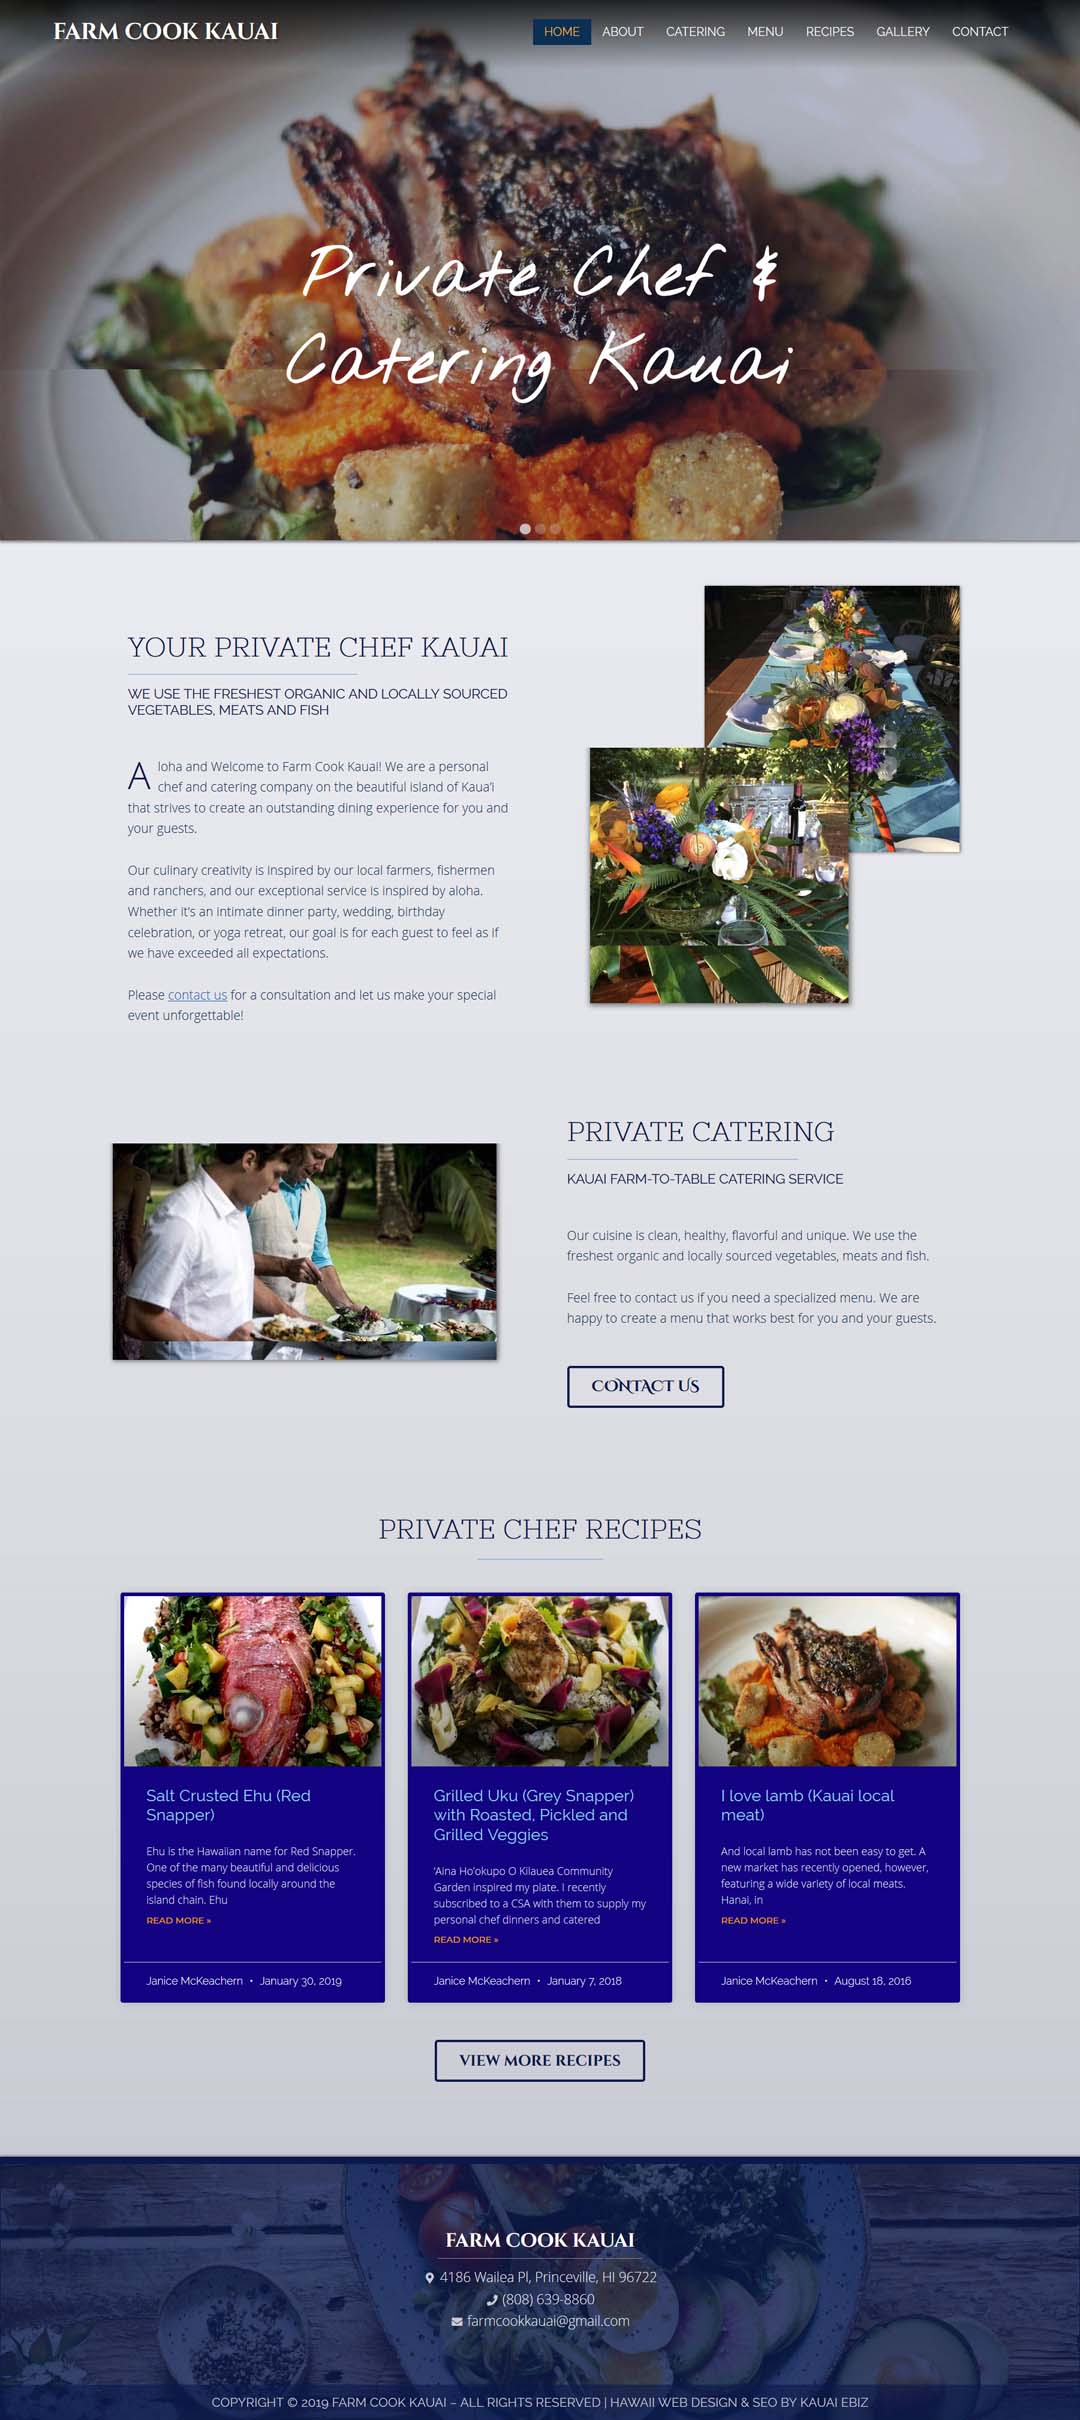 Farm Cook Kauai Private Chef whole site